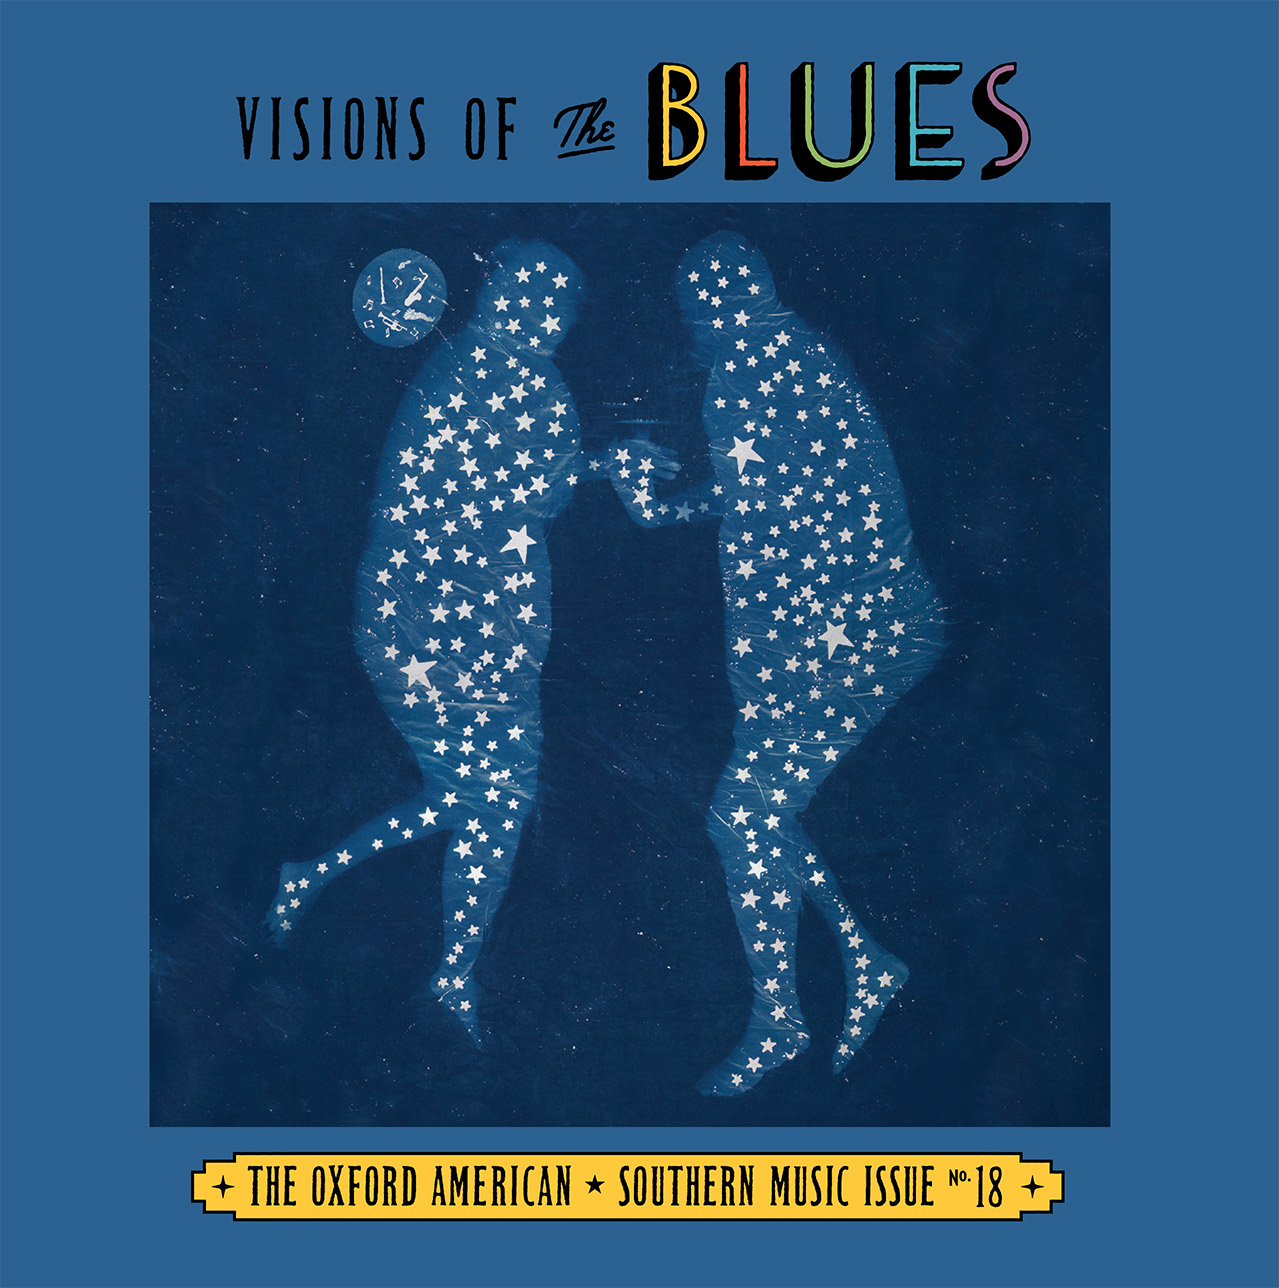 Various Artists - The Oxford American Magazine's 18th Southern Music Issue: Visions of the Blues, Winter 2016  Release Date: November 25, 2016 Magazine: Oxford American Magazine  SERVICE: Restoration,Mastering NUMBER OF DISCS: 1 GENRE: Blues FORMAT: CD